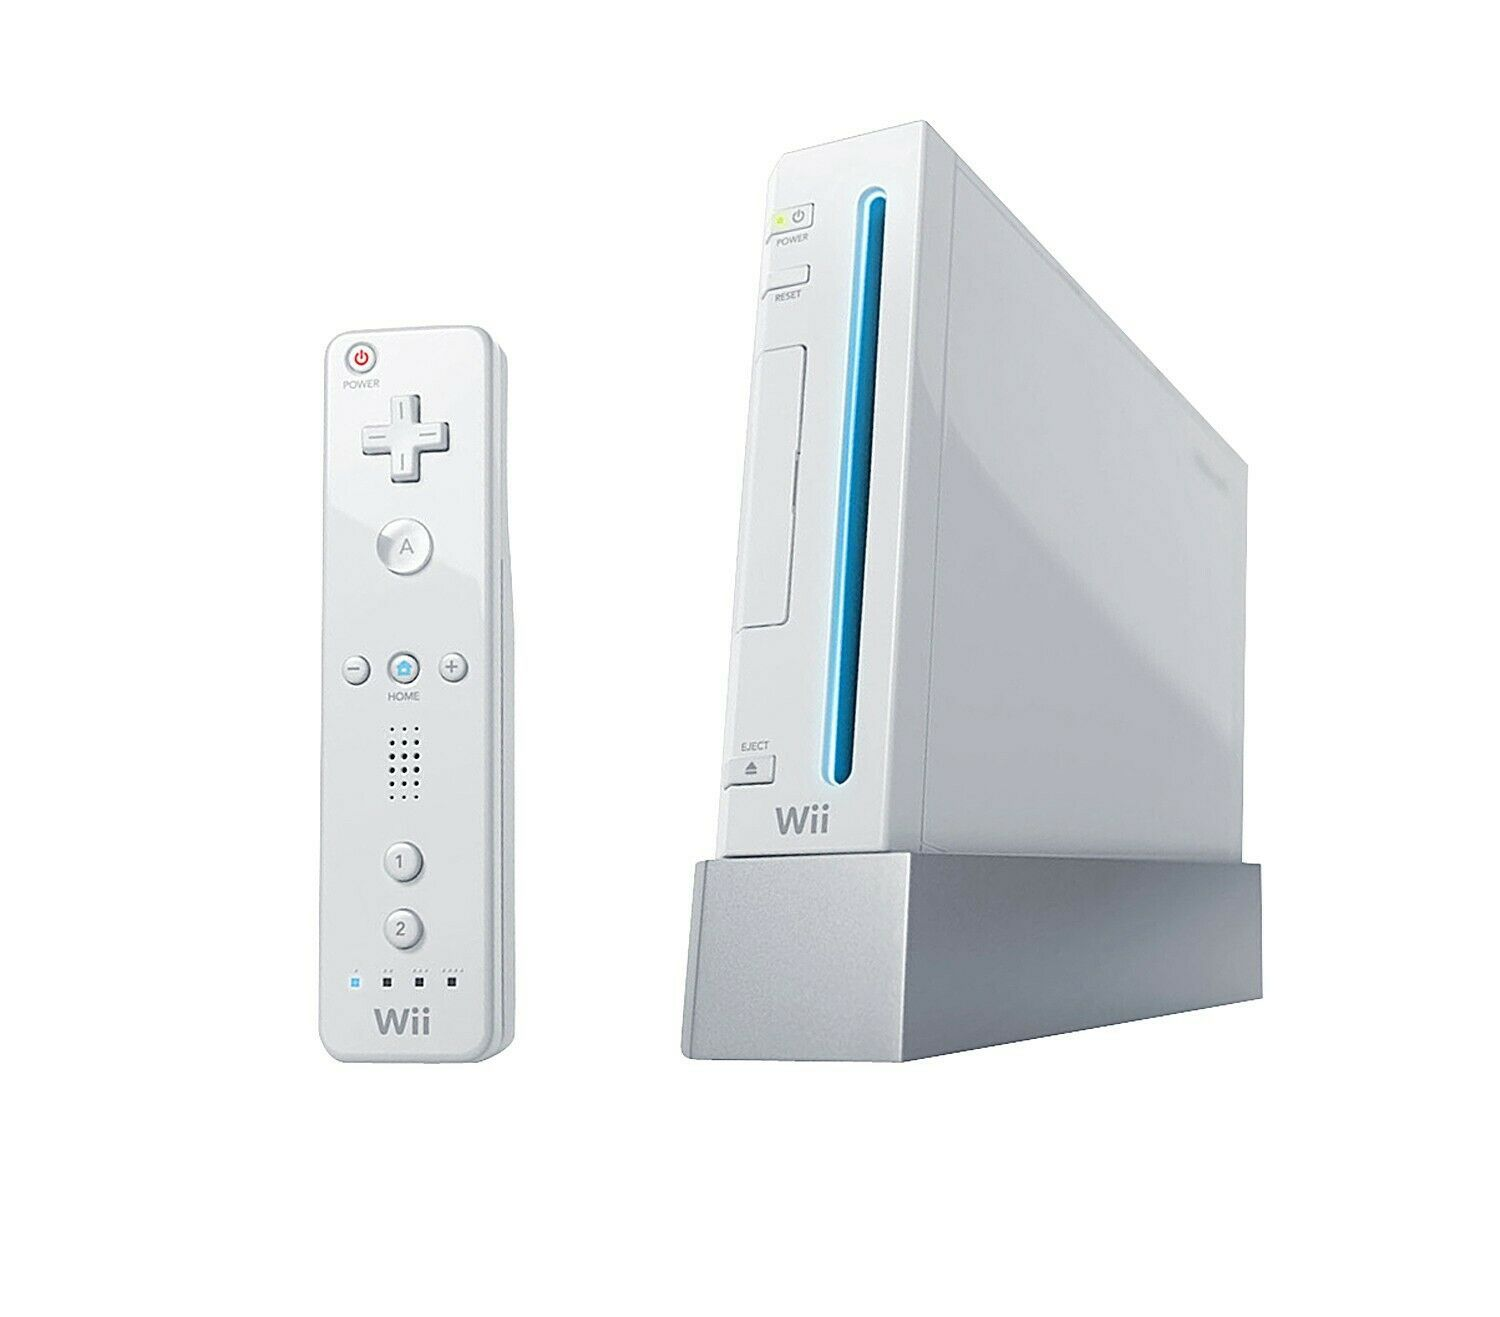 Full set of Nintendo Wii White Console with two nunchuks